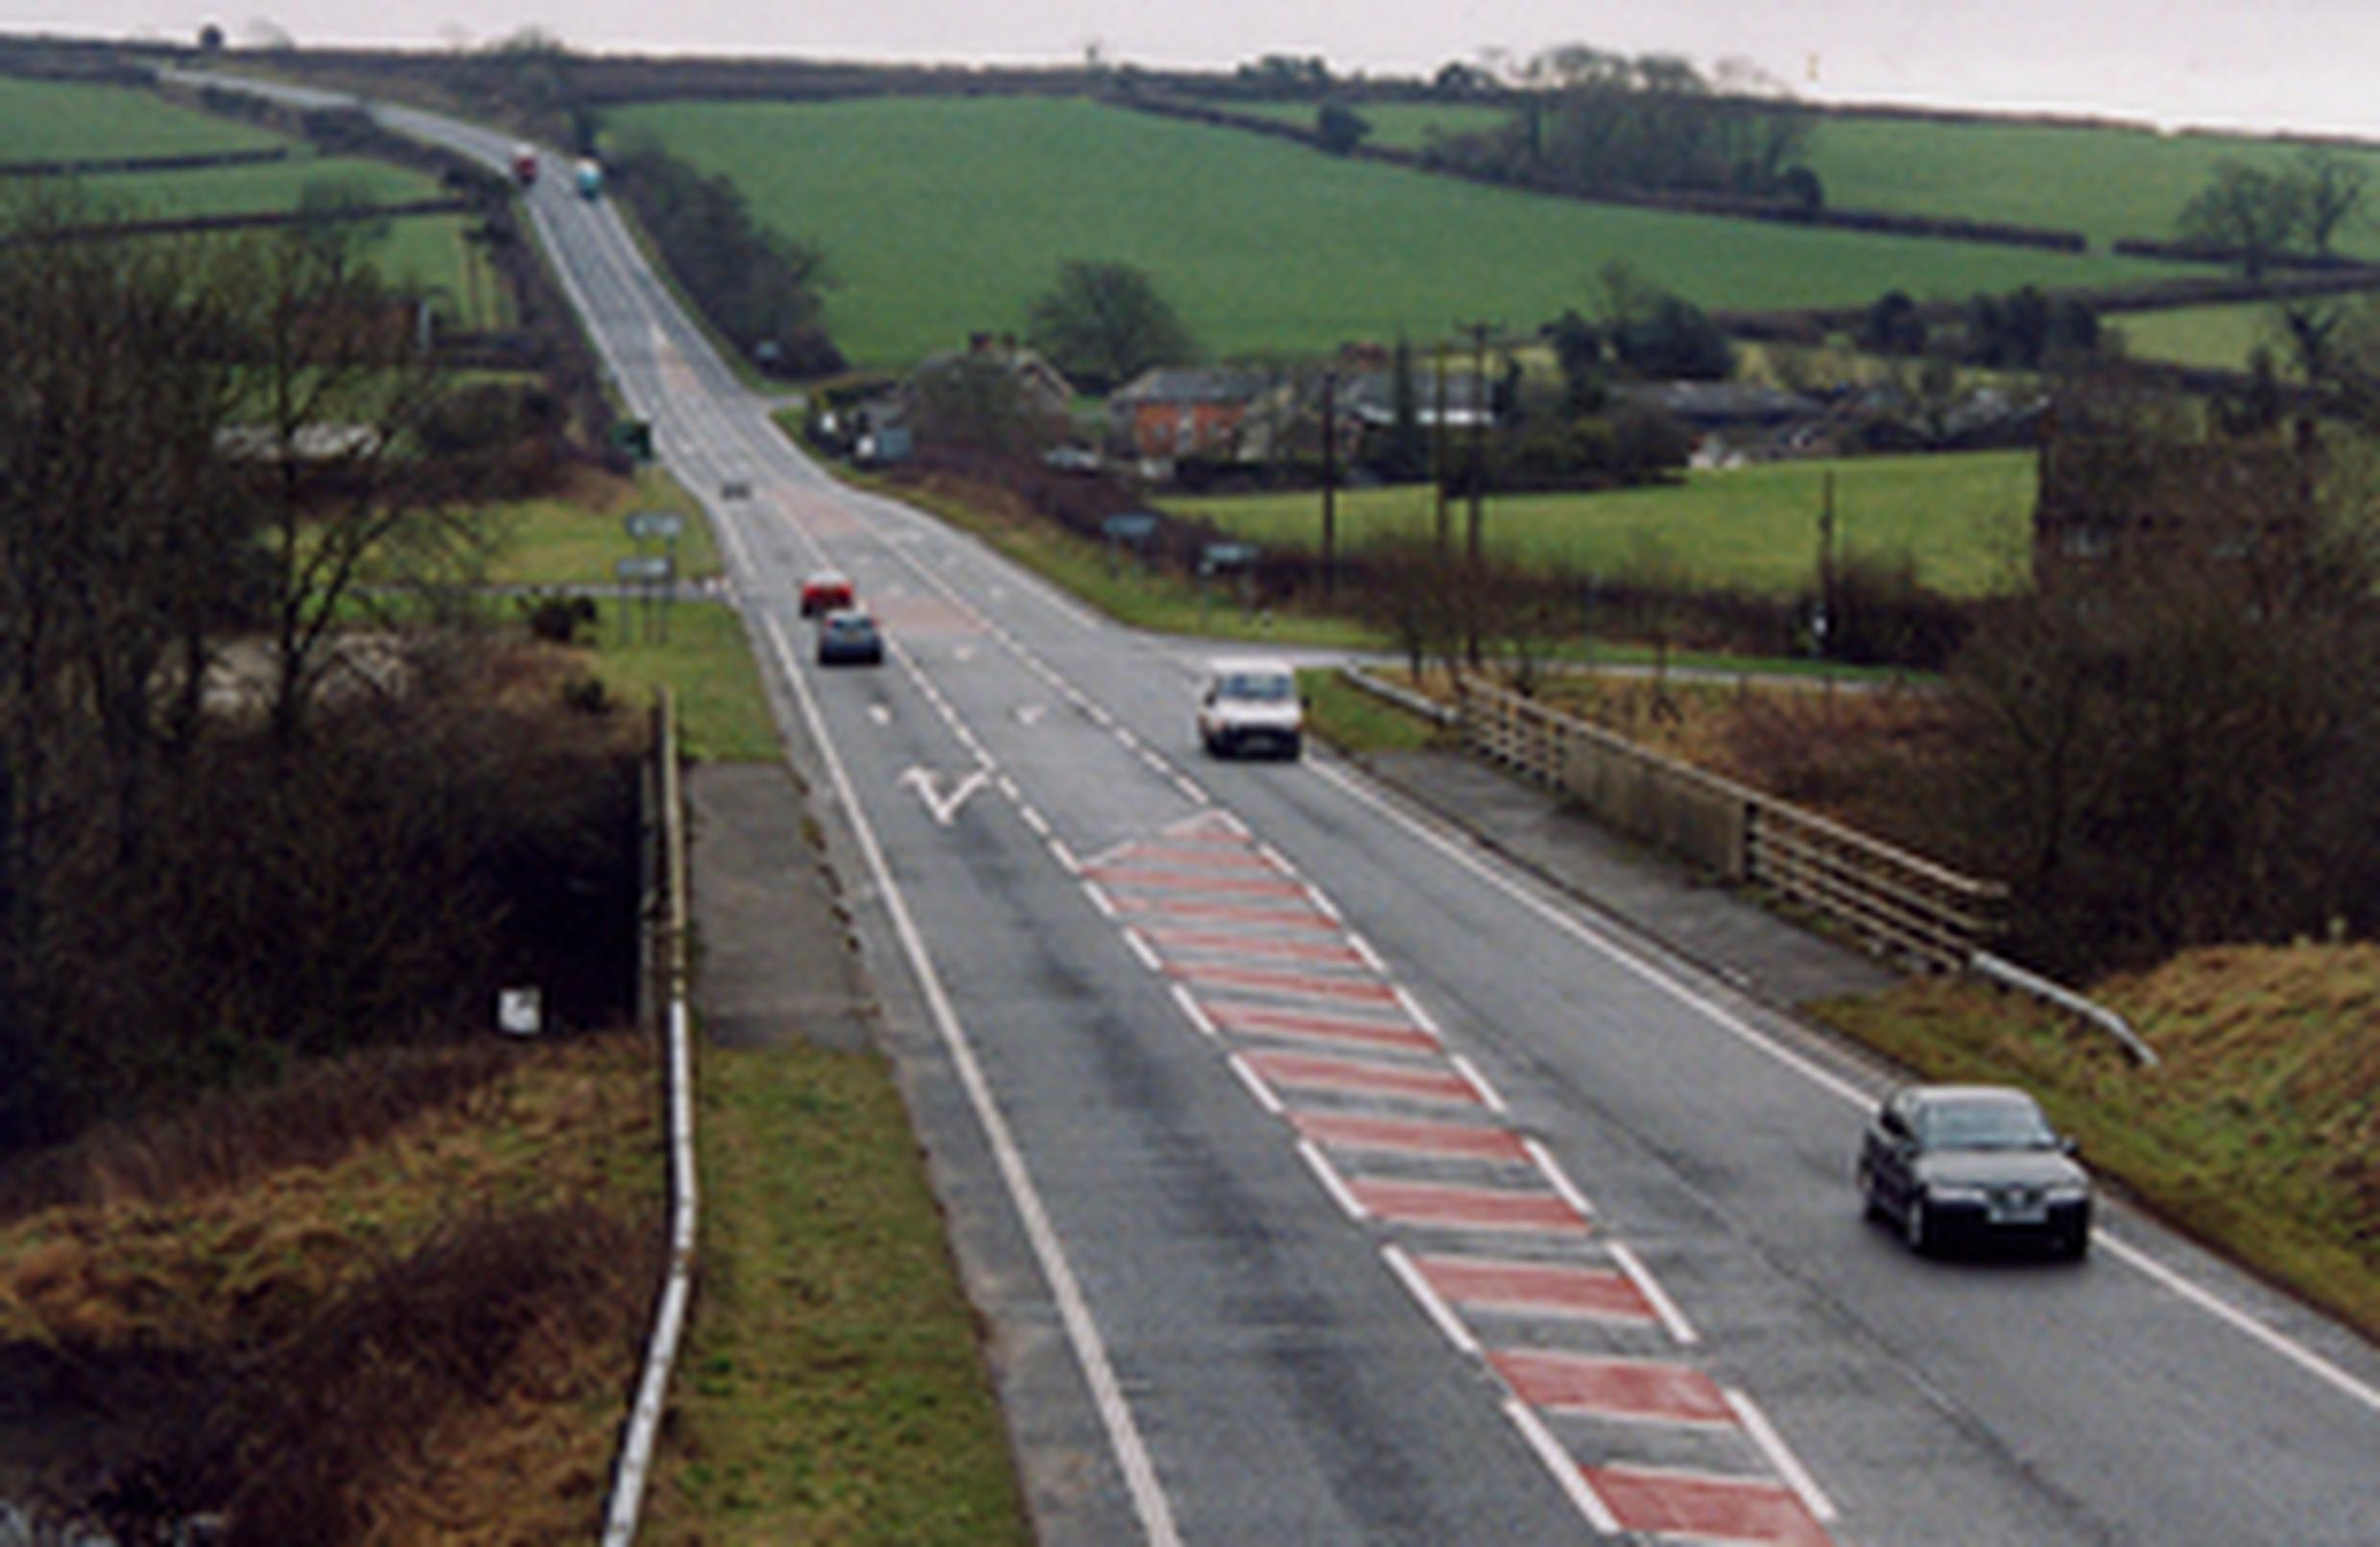 Investment will be made in bypasses, road widening and junction improvements